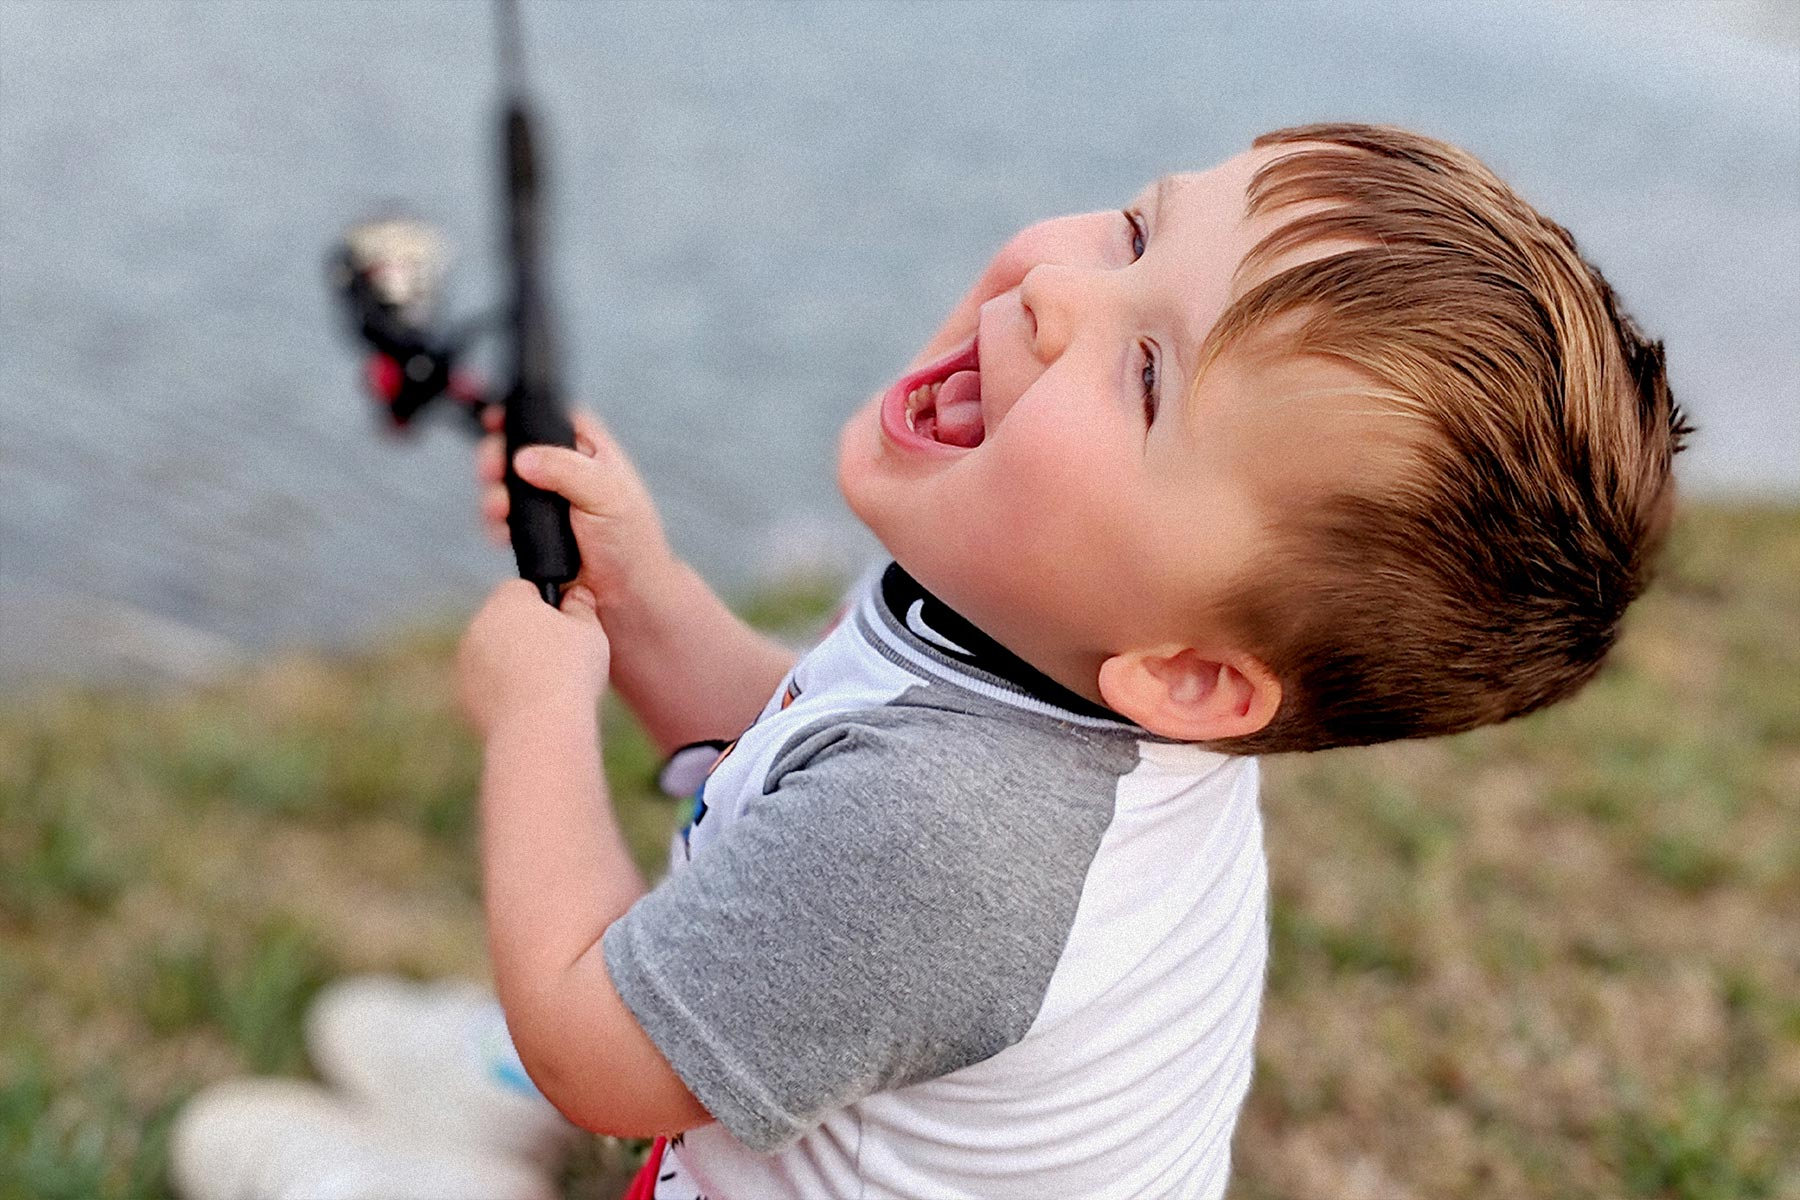 Kase laughs gleefully while holding a fishing pole.